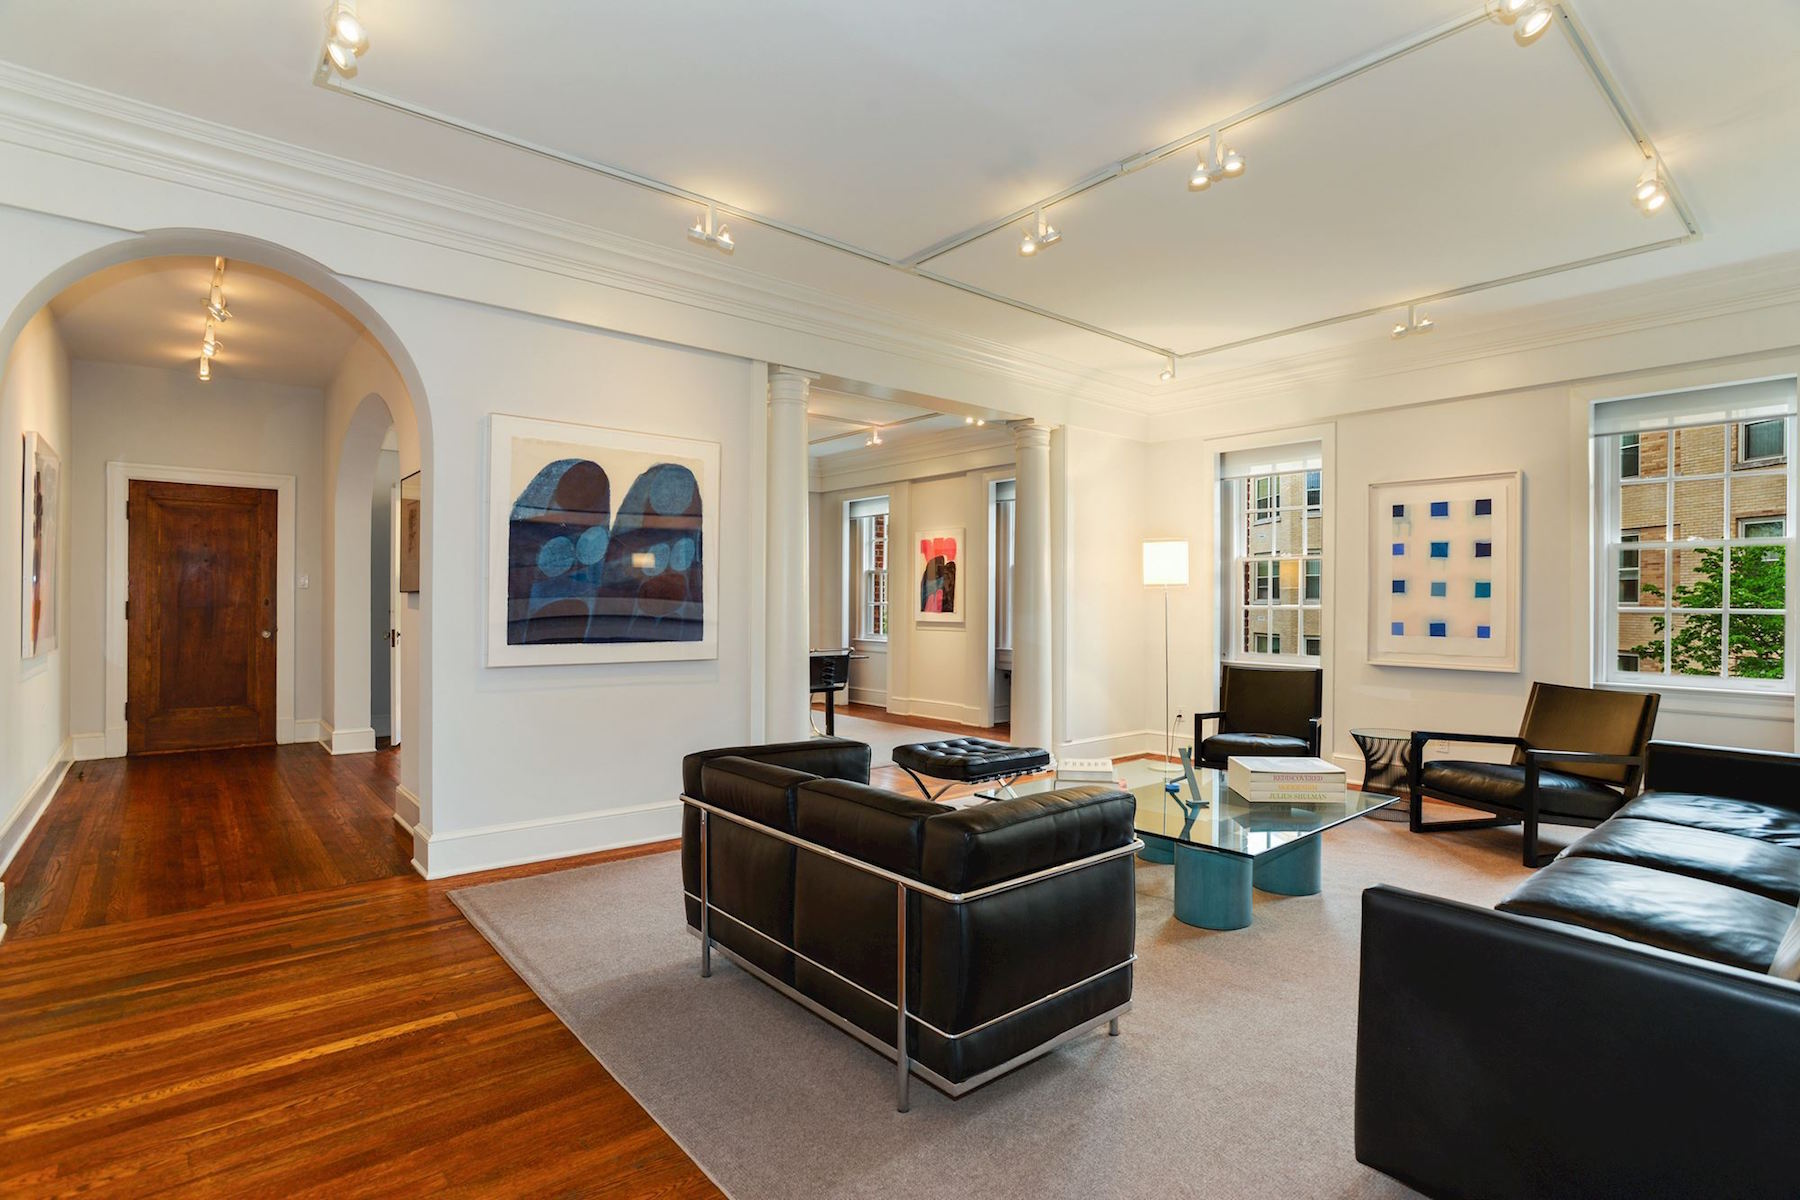 Condominium for Sale at Mount Pleasant 1661 Crescent Place Nw 510 Washington, District Of Columbia 20009 United States